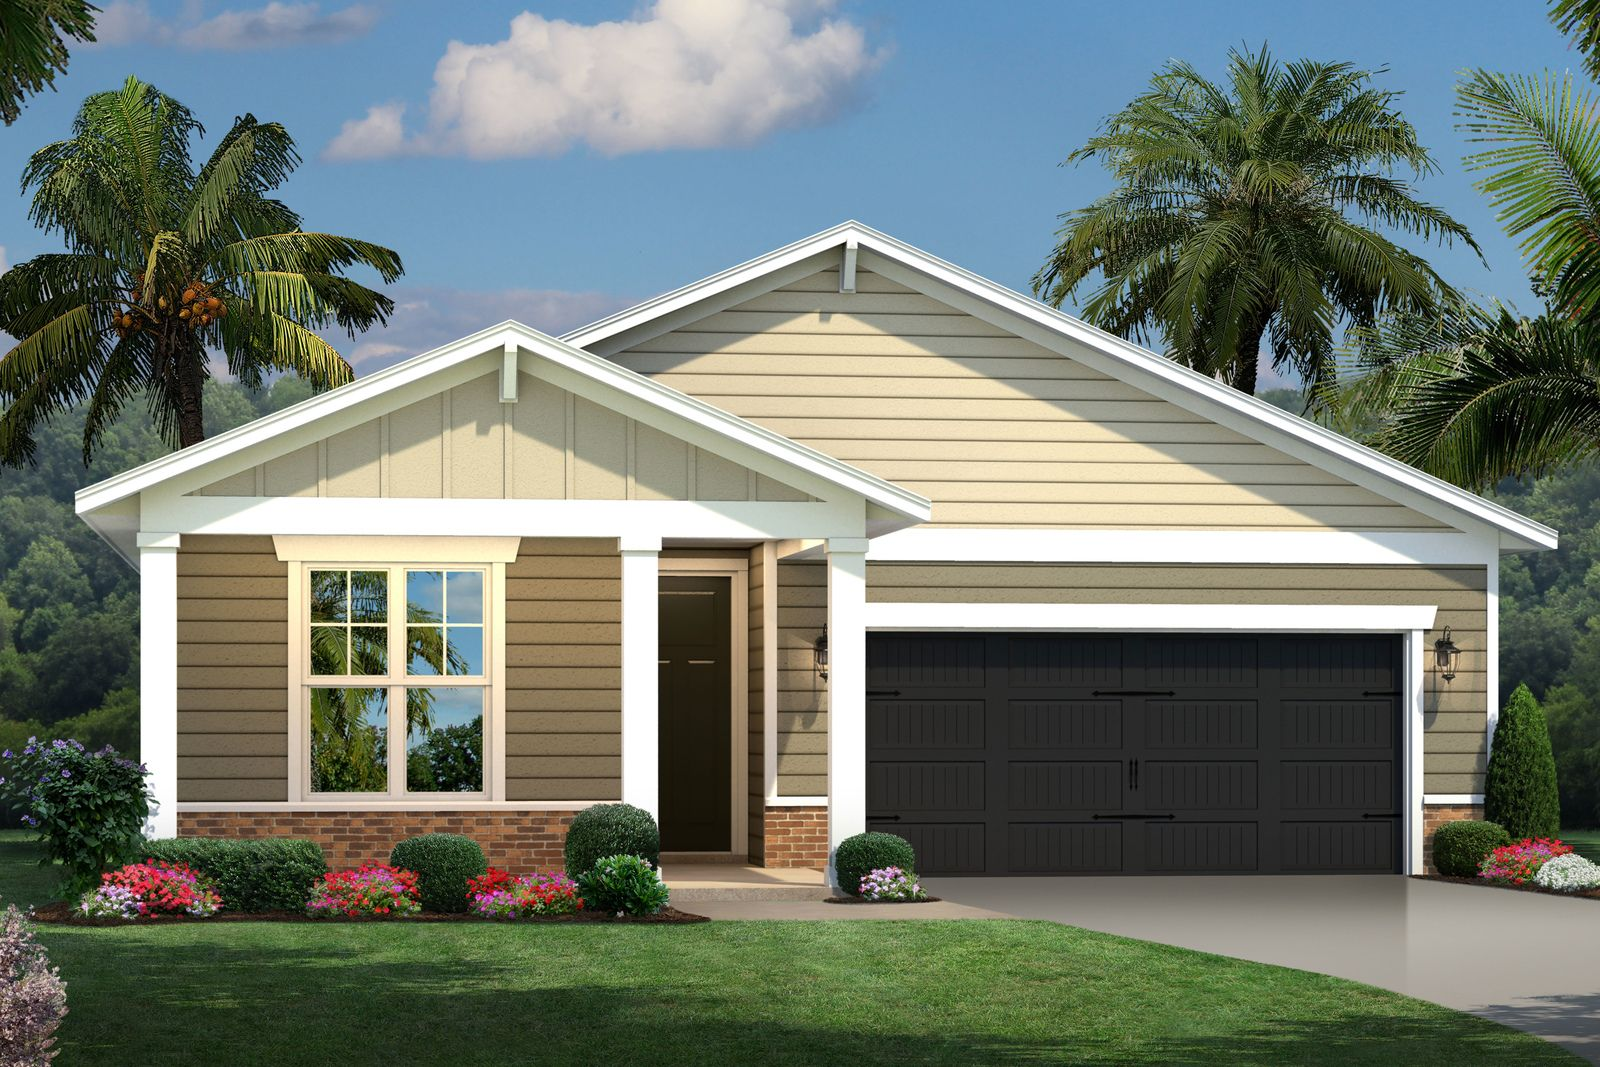 Single Family for Sale at Arden Artisan Collection - Audrey 19425 Southern Blvd Loxahatchee, Florida 33470 United States